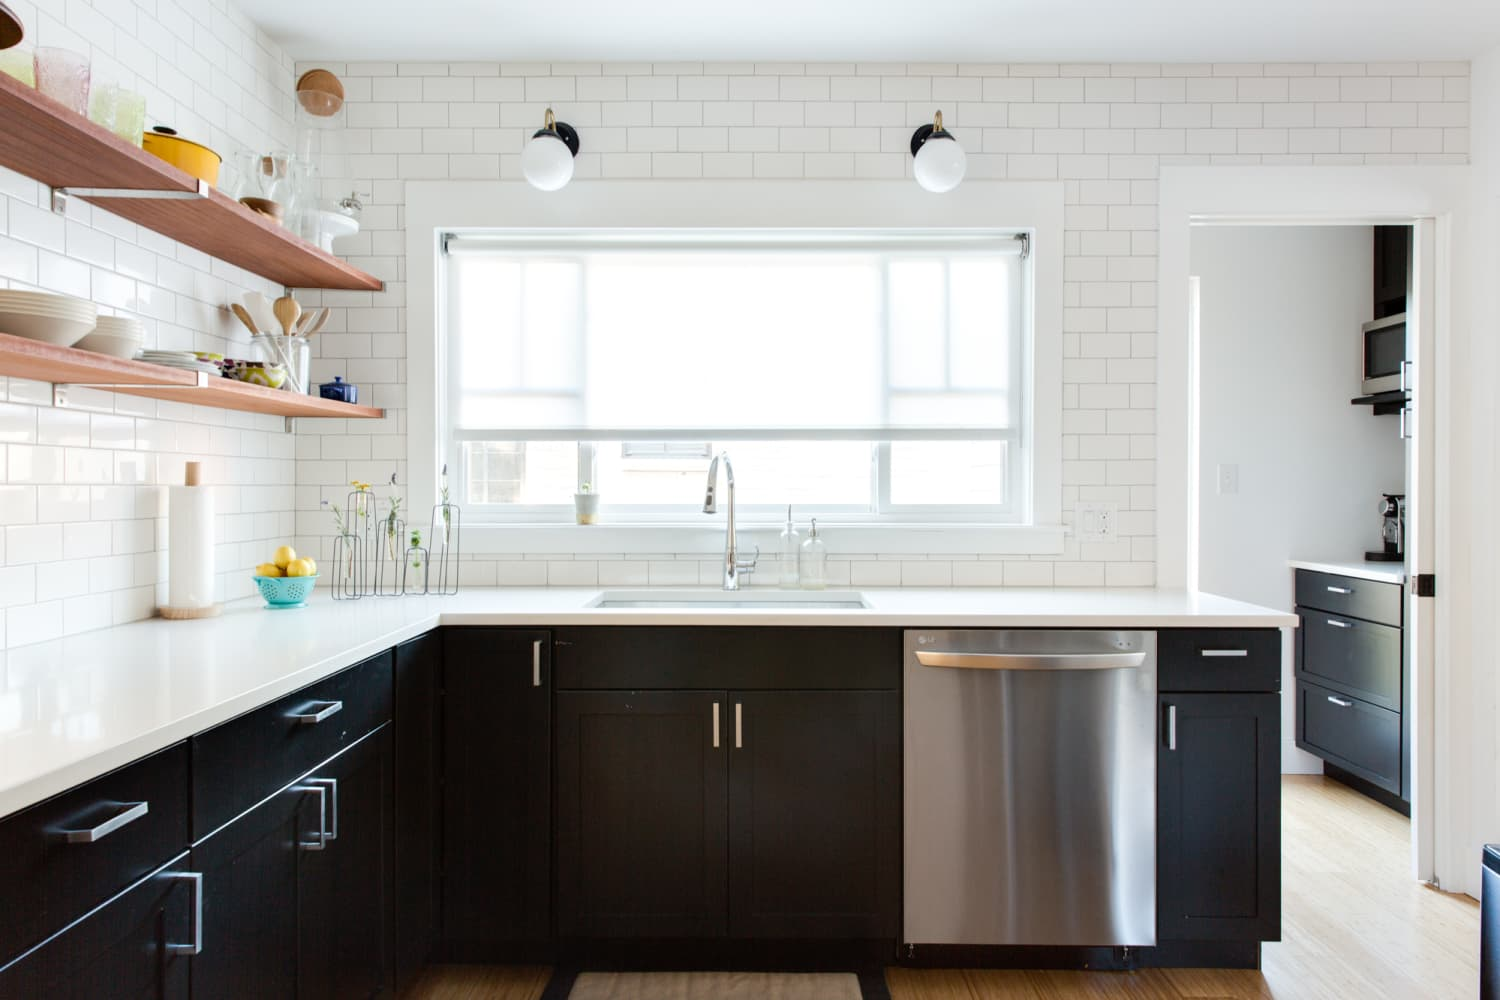 The 9 Deadly Sins of Bad Kitchens, According to the Pros